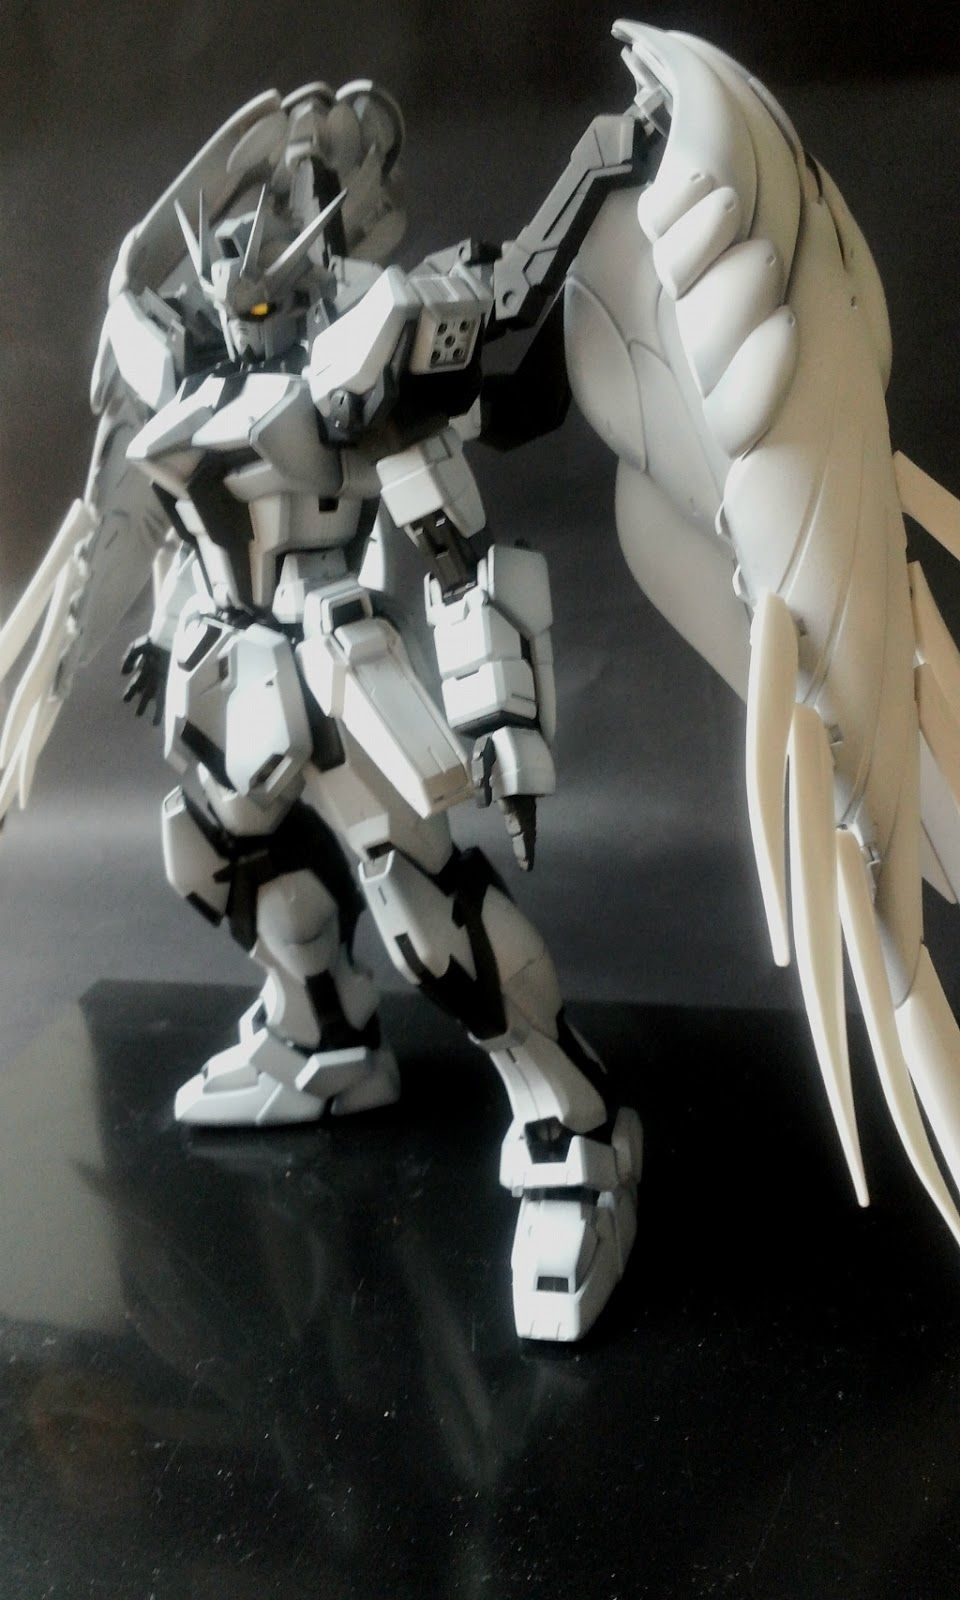 Custom Build: 1/100 Wing Gundam Striker - Gundam Kits Collection News and Reviews